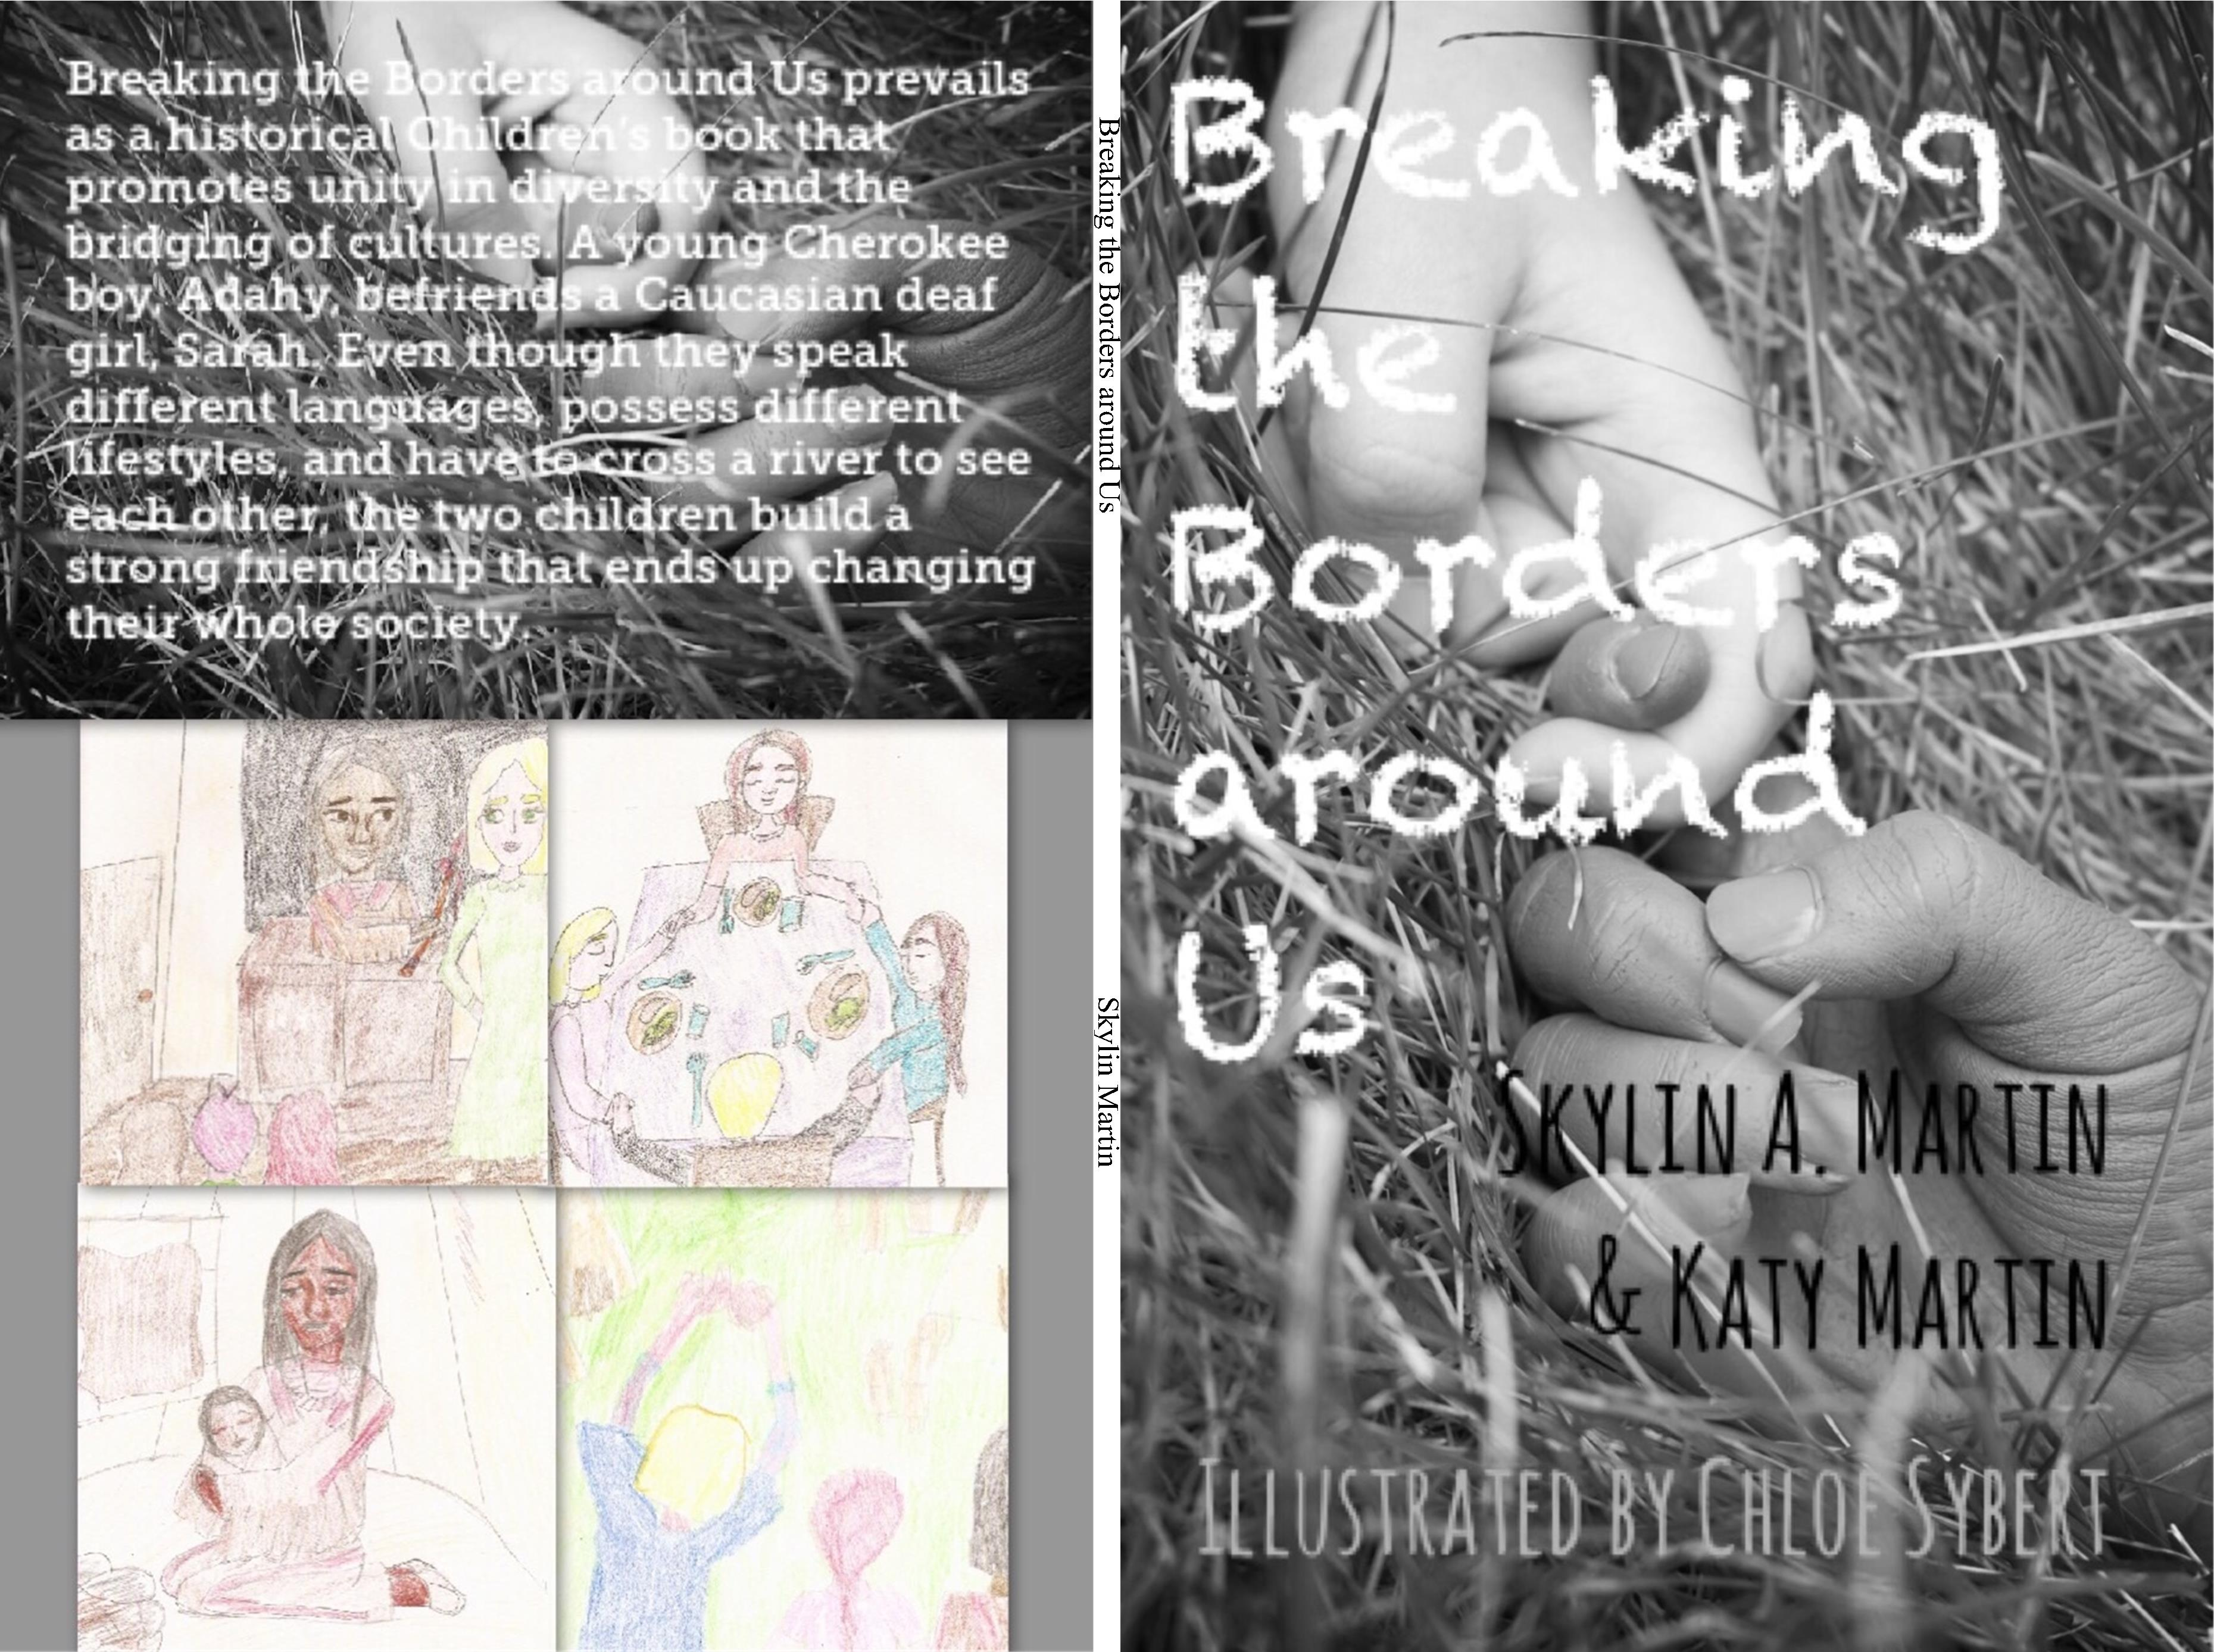 Breaking the Borders around Us cover image